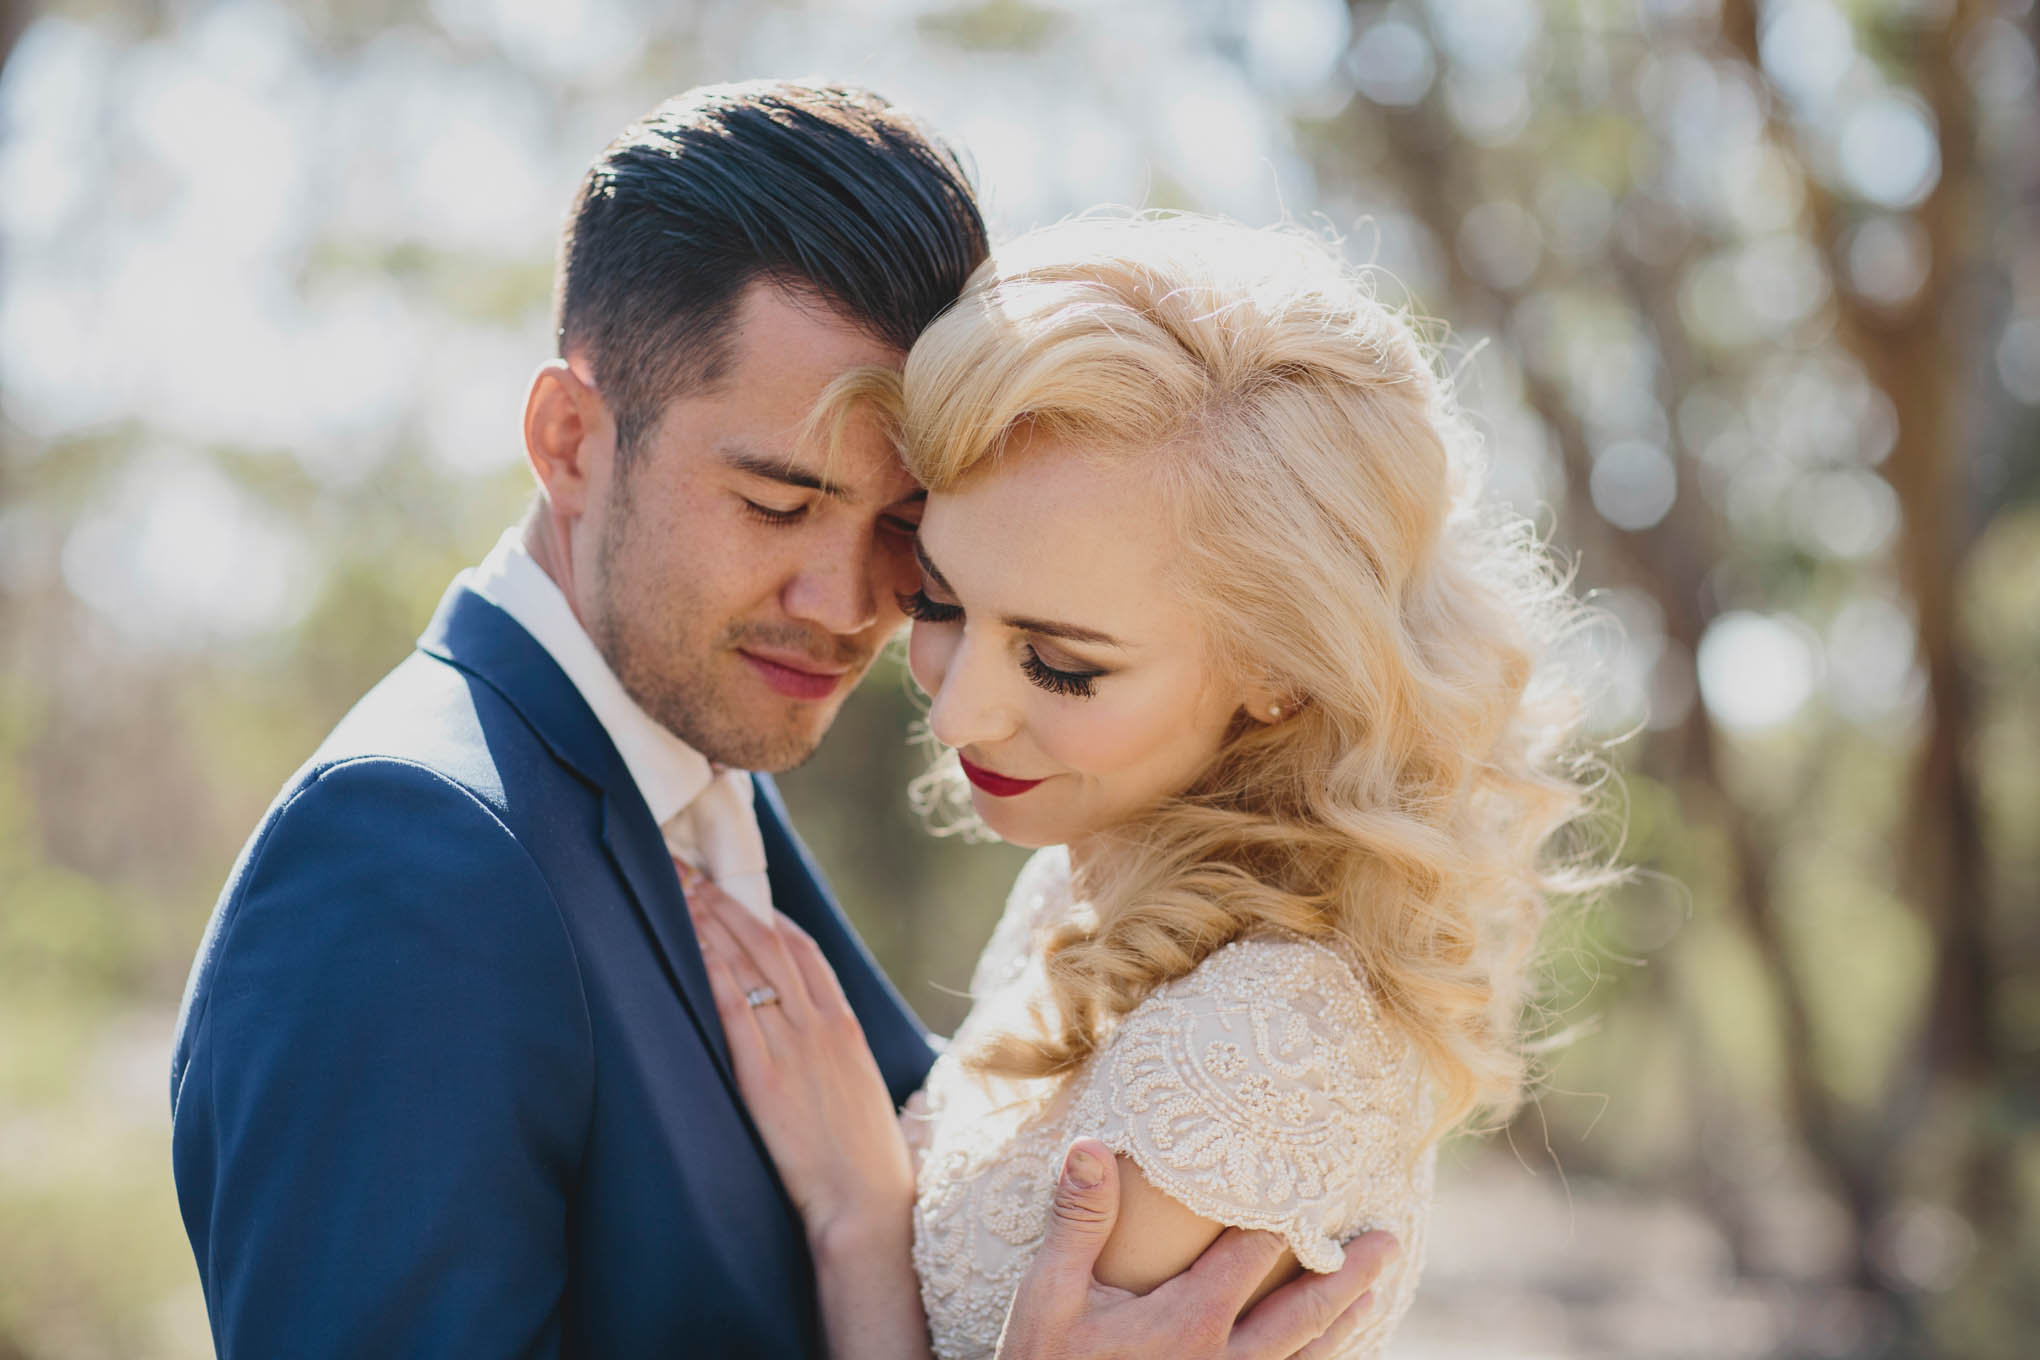 Categories: Weddings-Real Wedding: Kelly + Christian - Photography by Jessica Sim